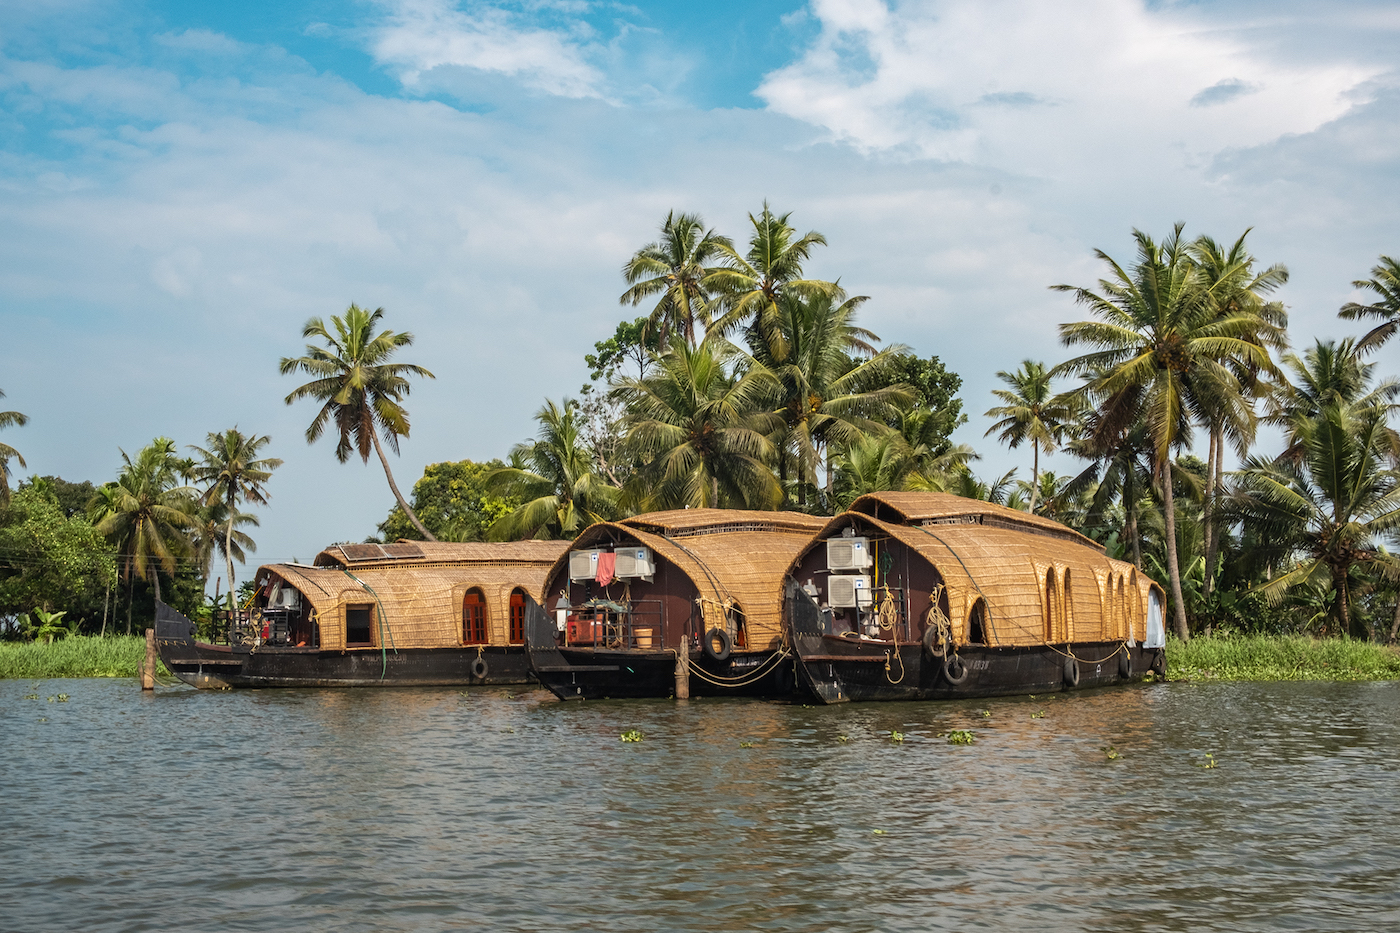 Rondreis zuid-india alleppey